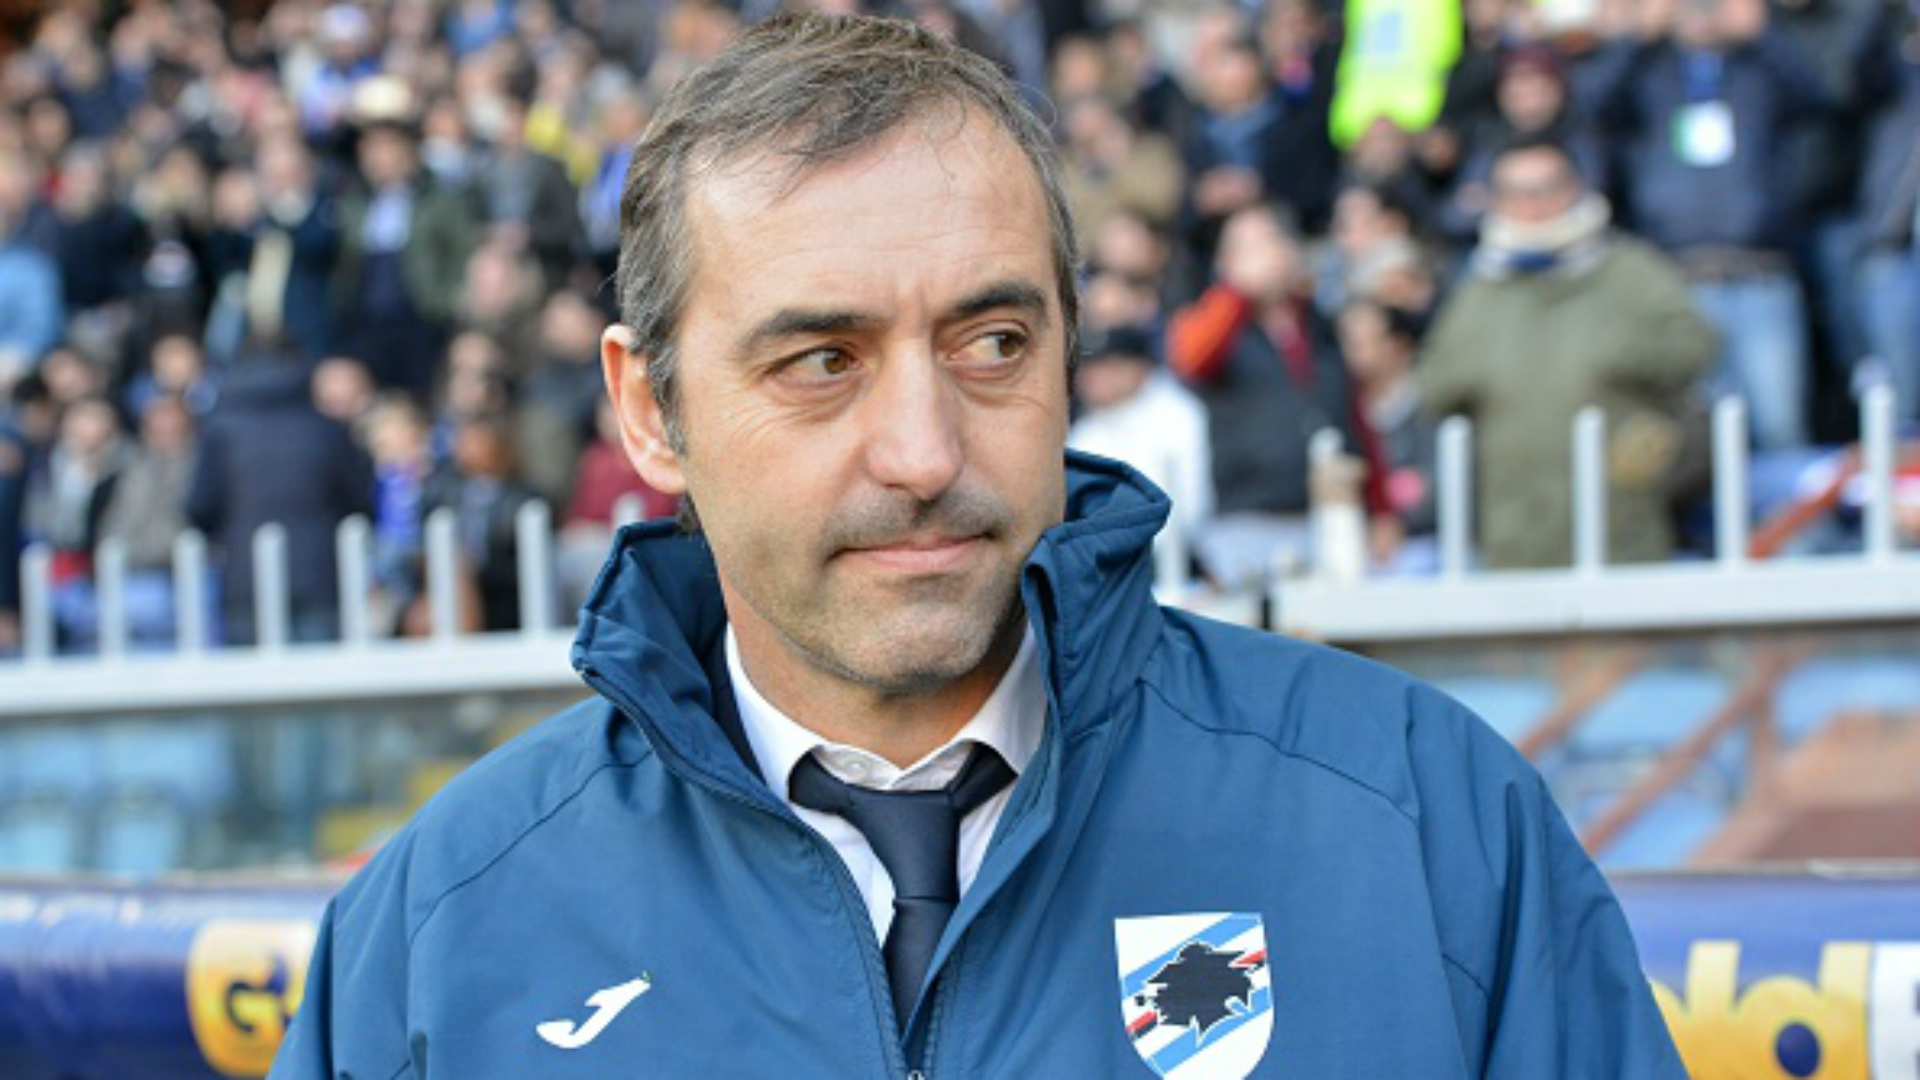 http://images.performgroup.com/di/library/goal_it/3d/7d/marco-giampaolo-sampdoria-serie-a_tdly134e21ar17l6rfil07xb8.jpg